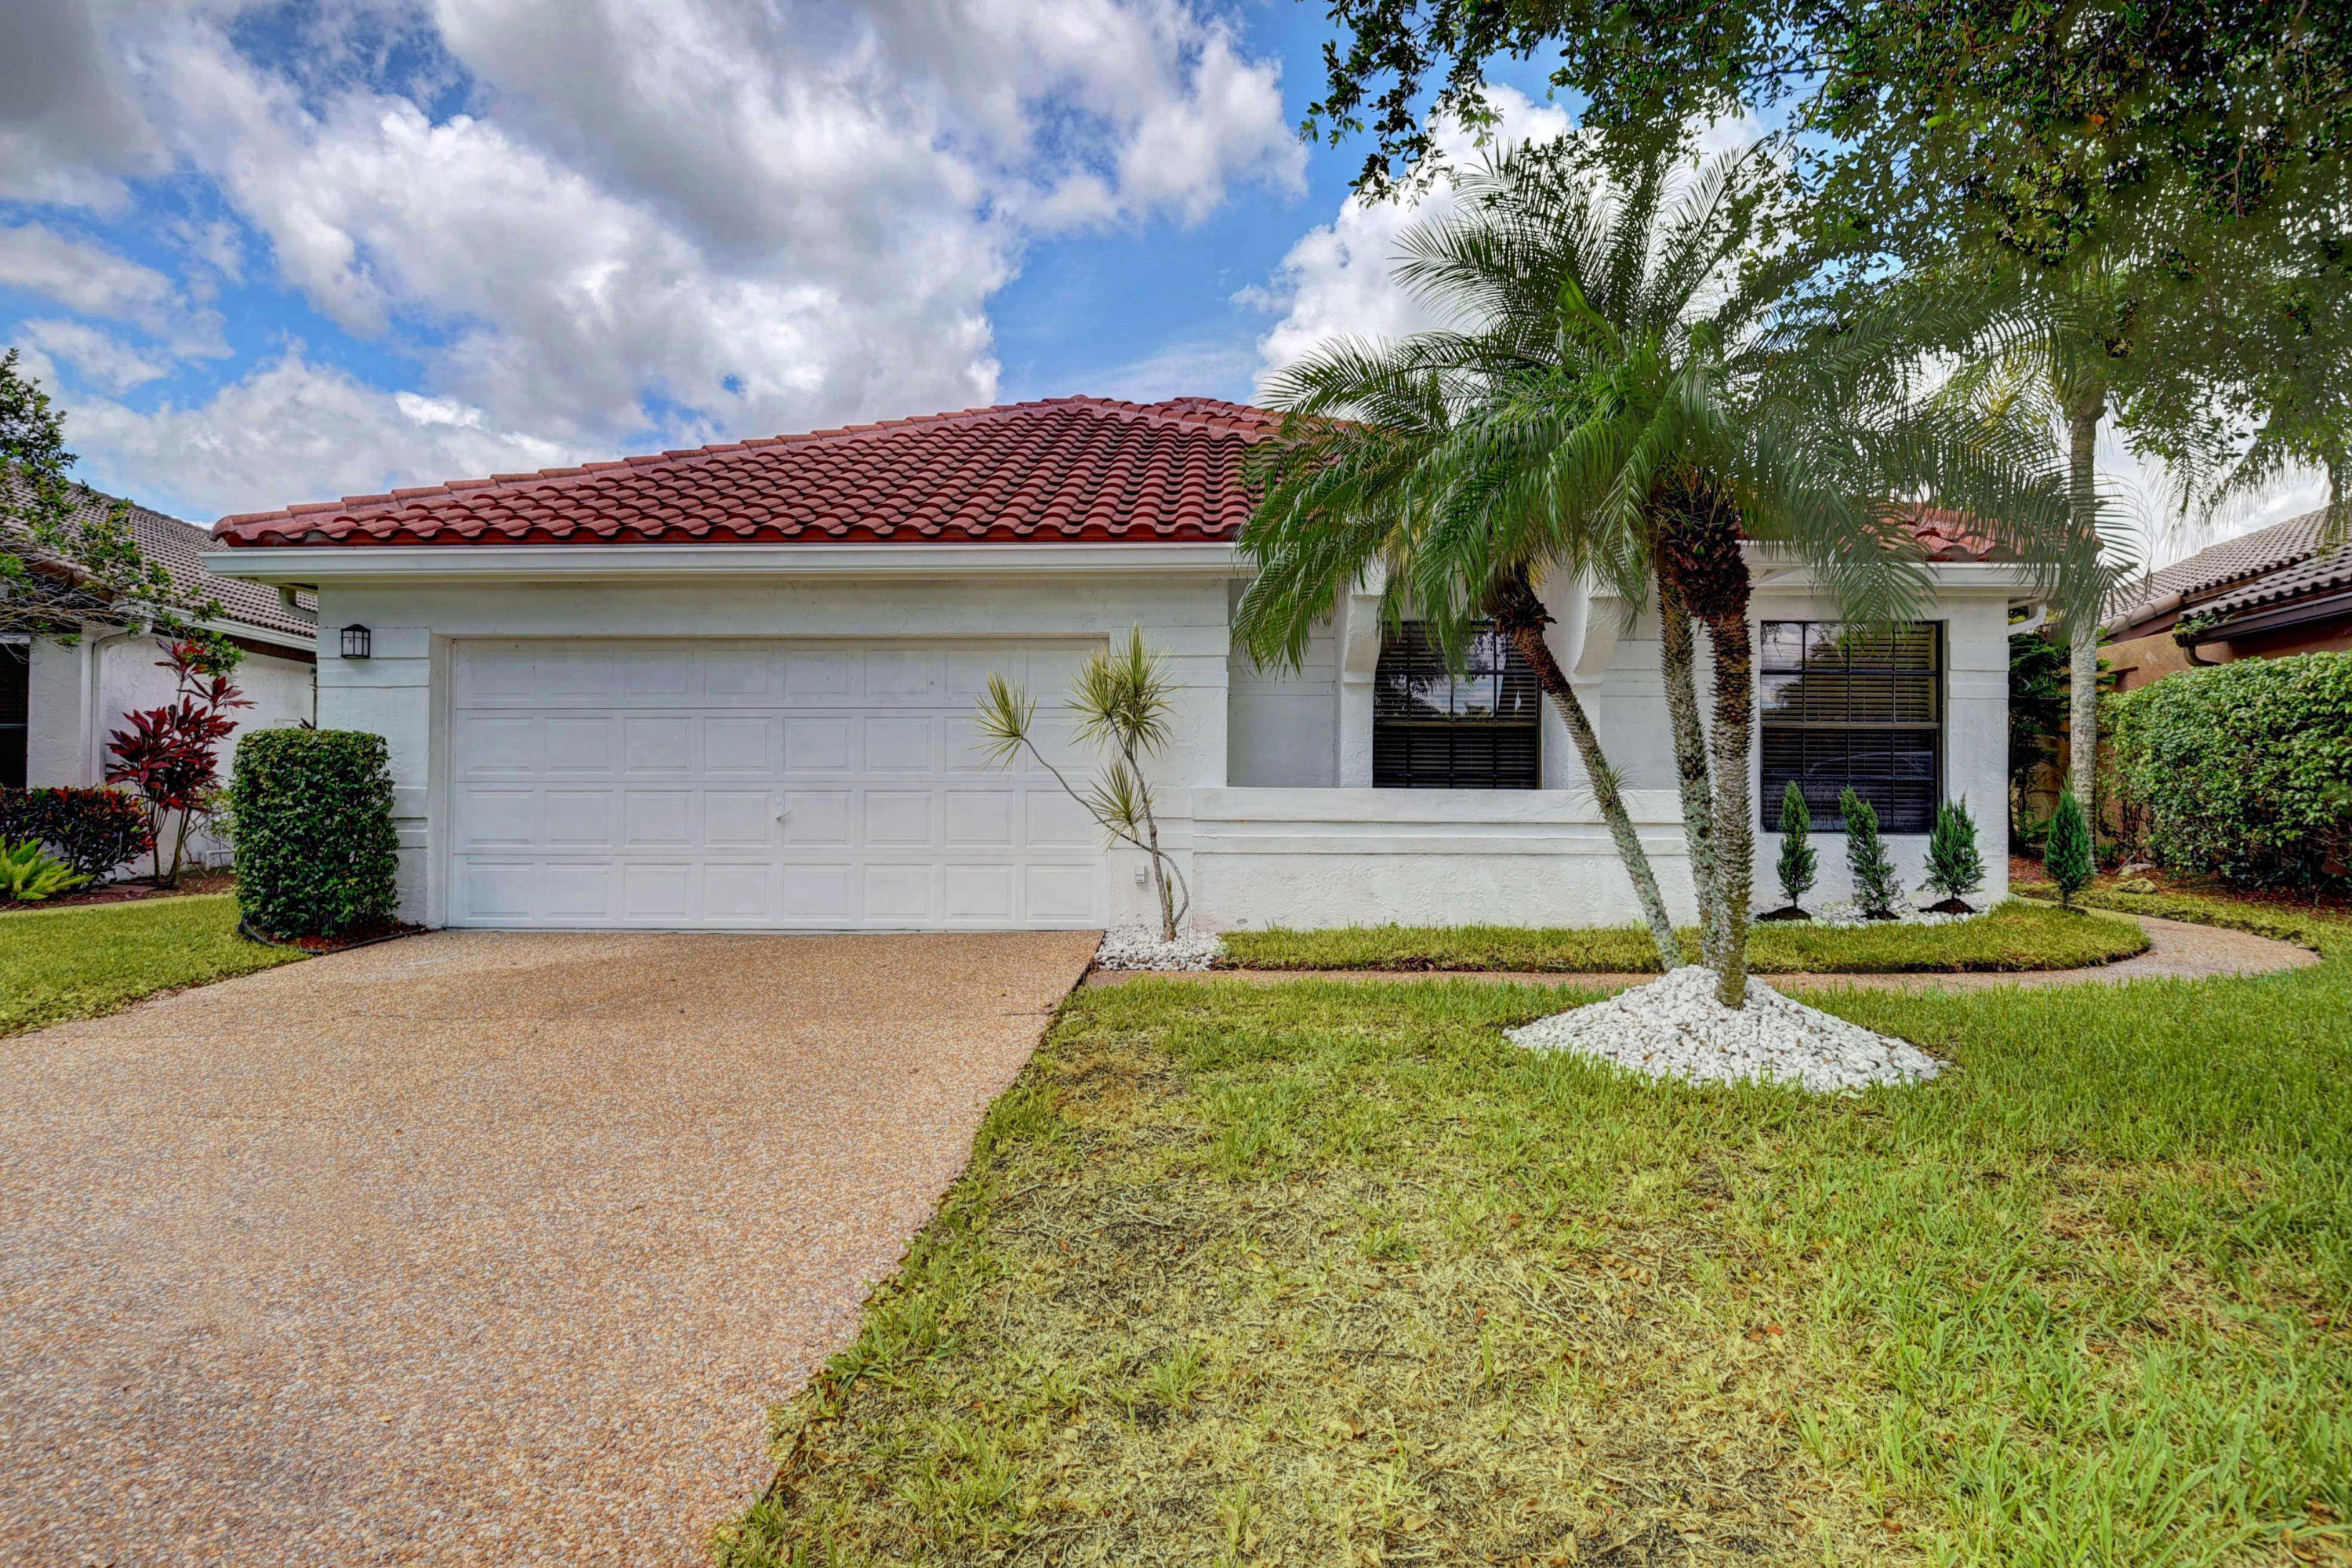 Home for sale in Boca Woods Country Club Boca Raton Florida